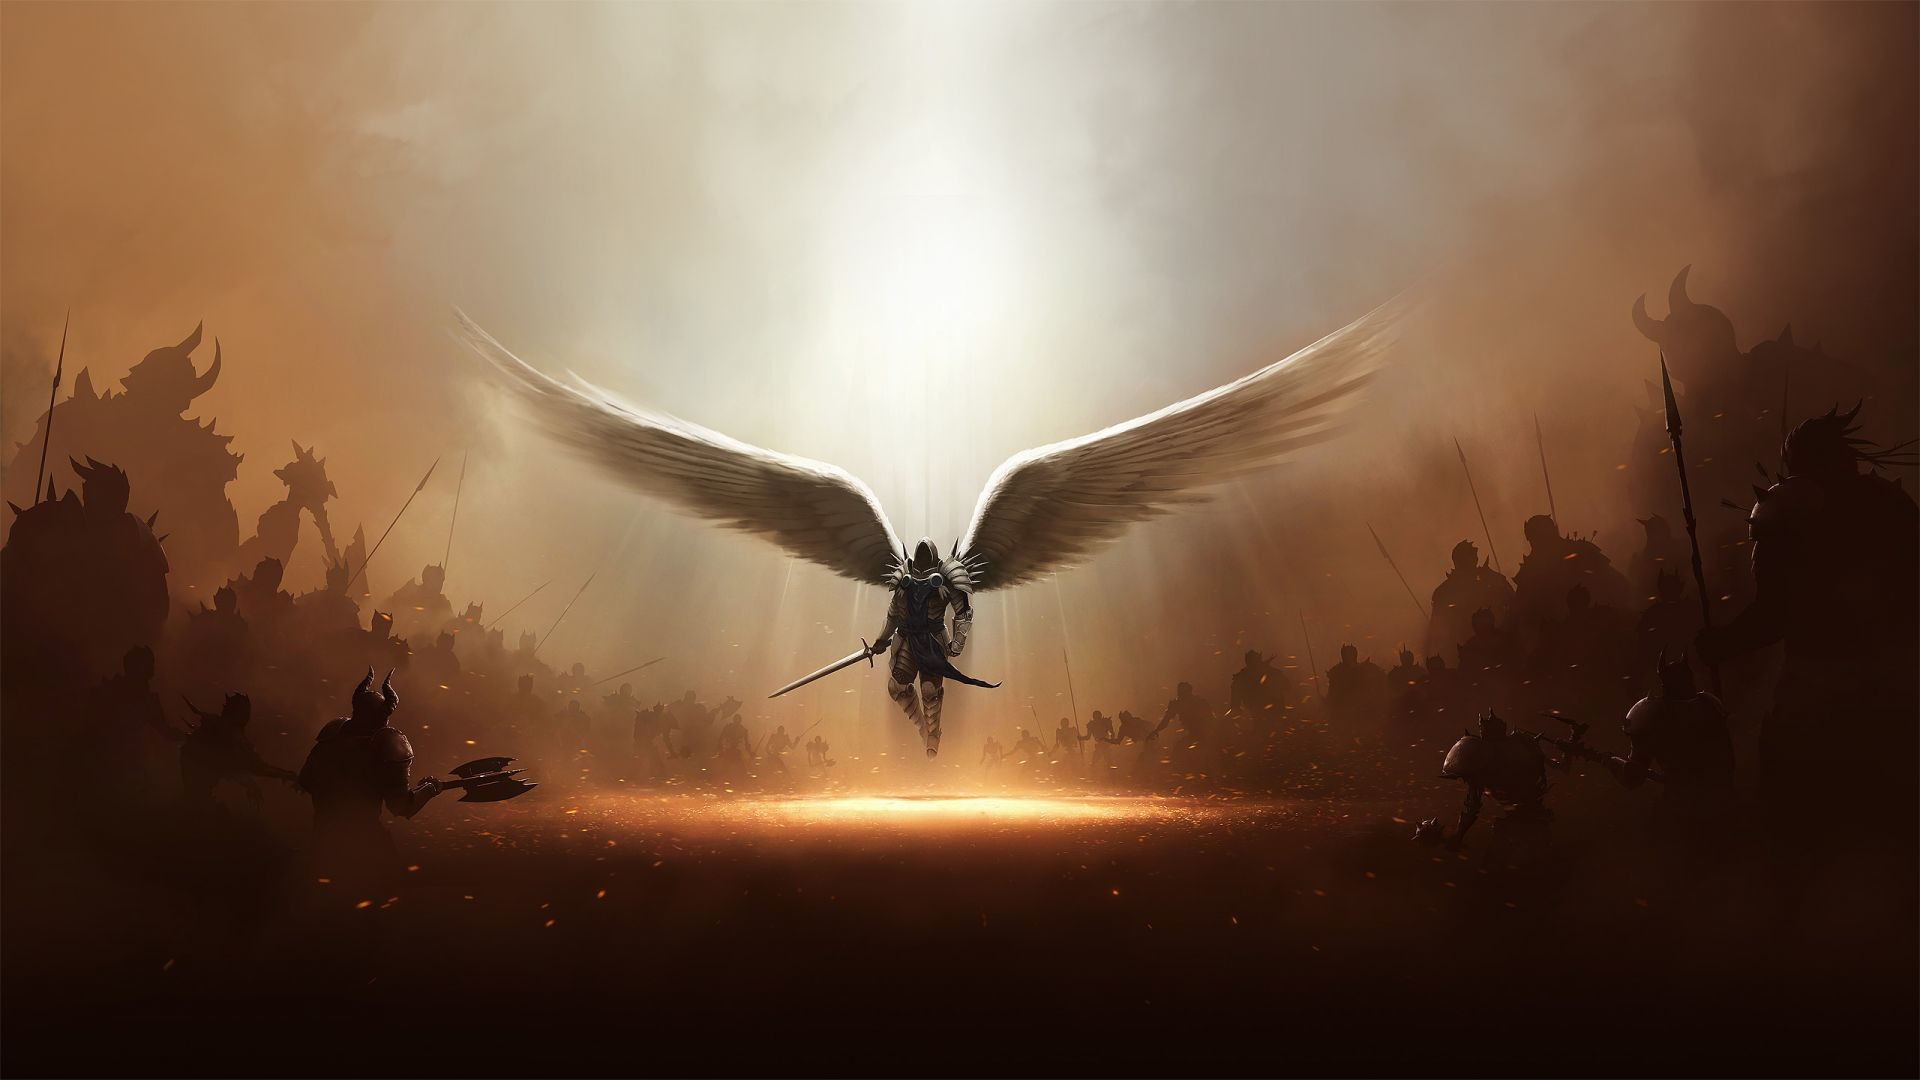 469245-download-free-st-michael-the-archangel-wallpaper-1920x1080-free-download